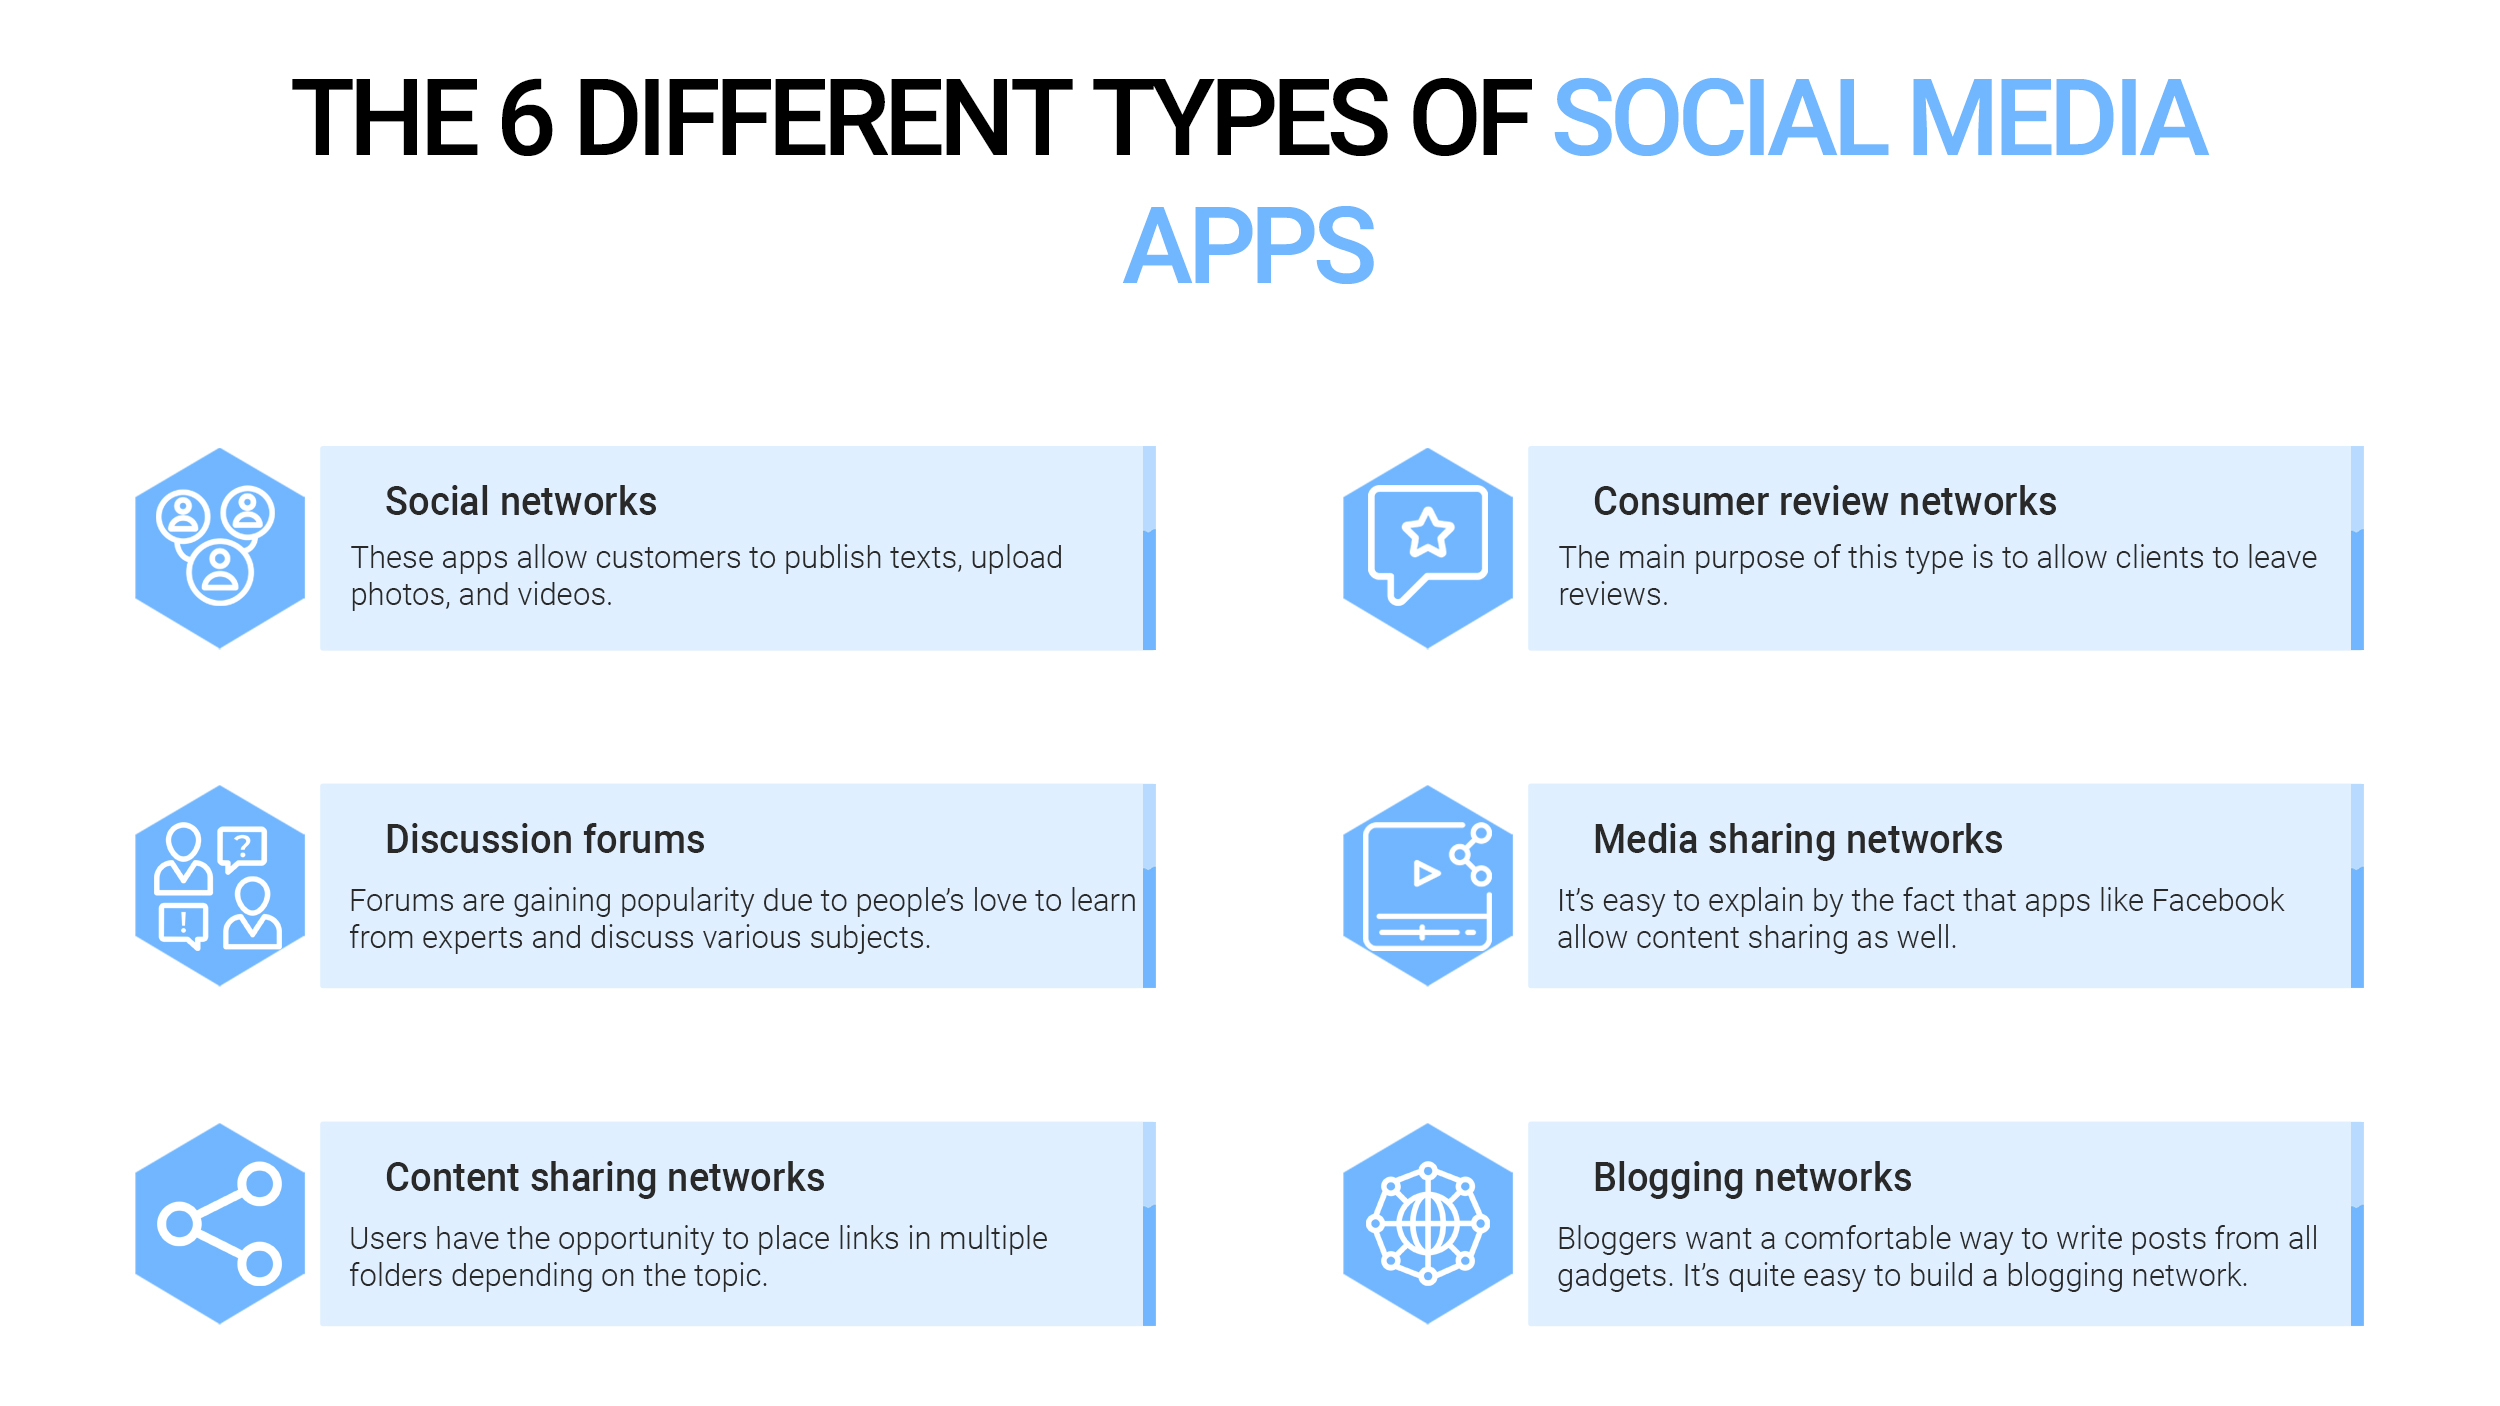 The 6 different types of social media apps